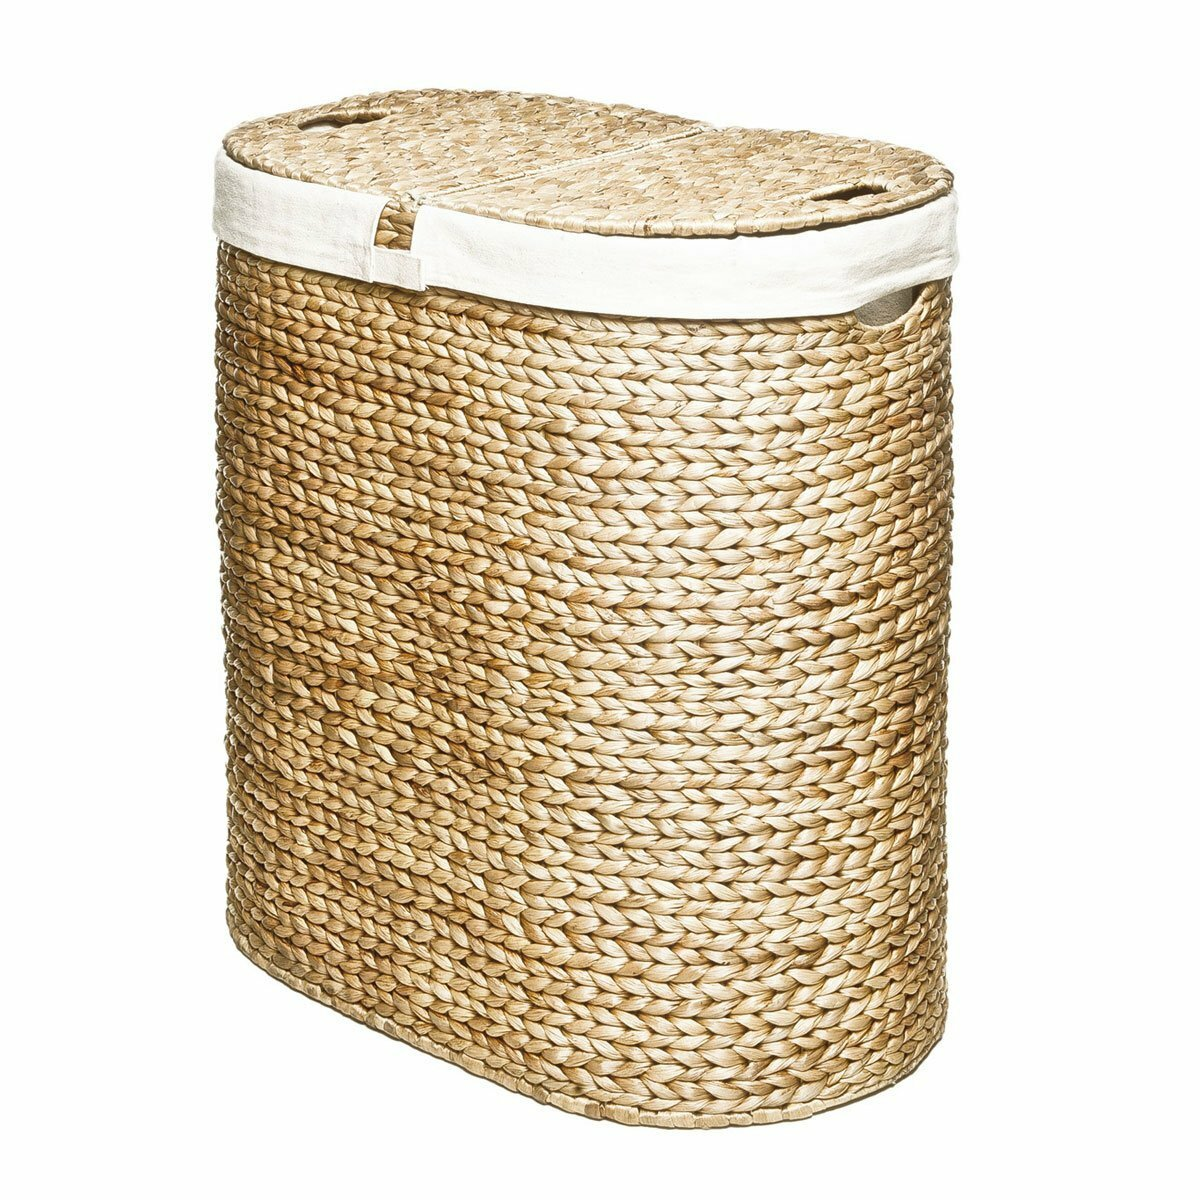 Seville classics classics water hyacinth oval double - Way laundry hamper ...